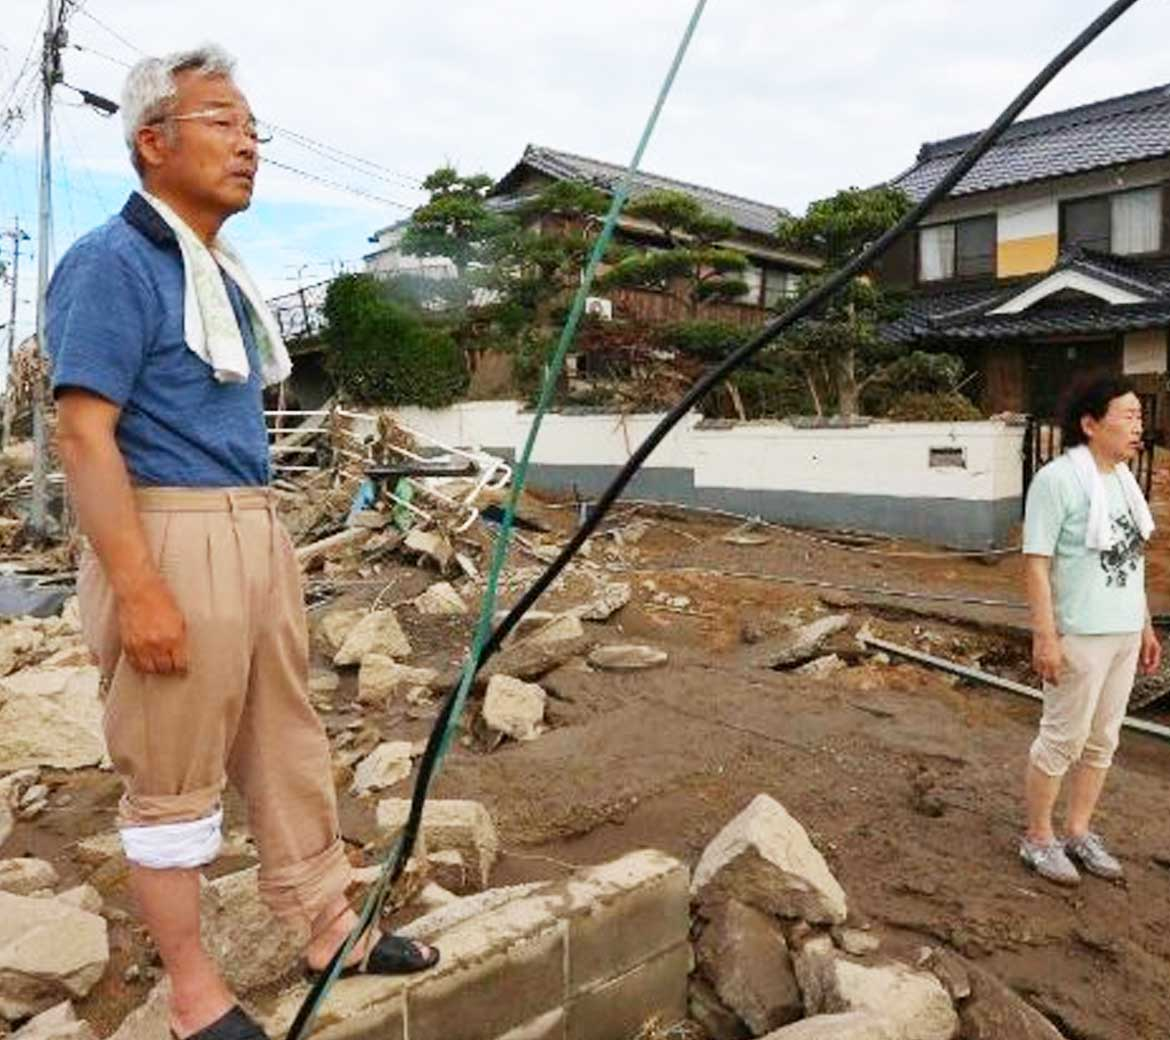 Family in Japan surveying their property after the flood in Japan.